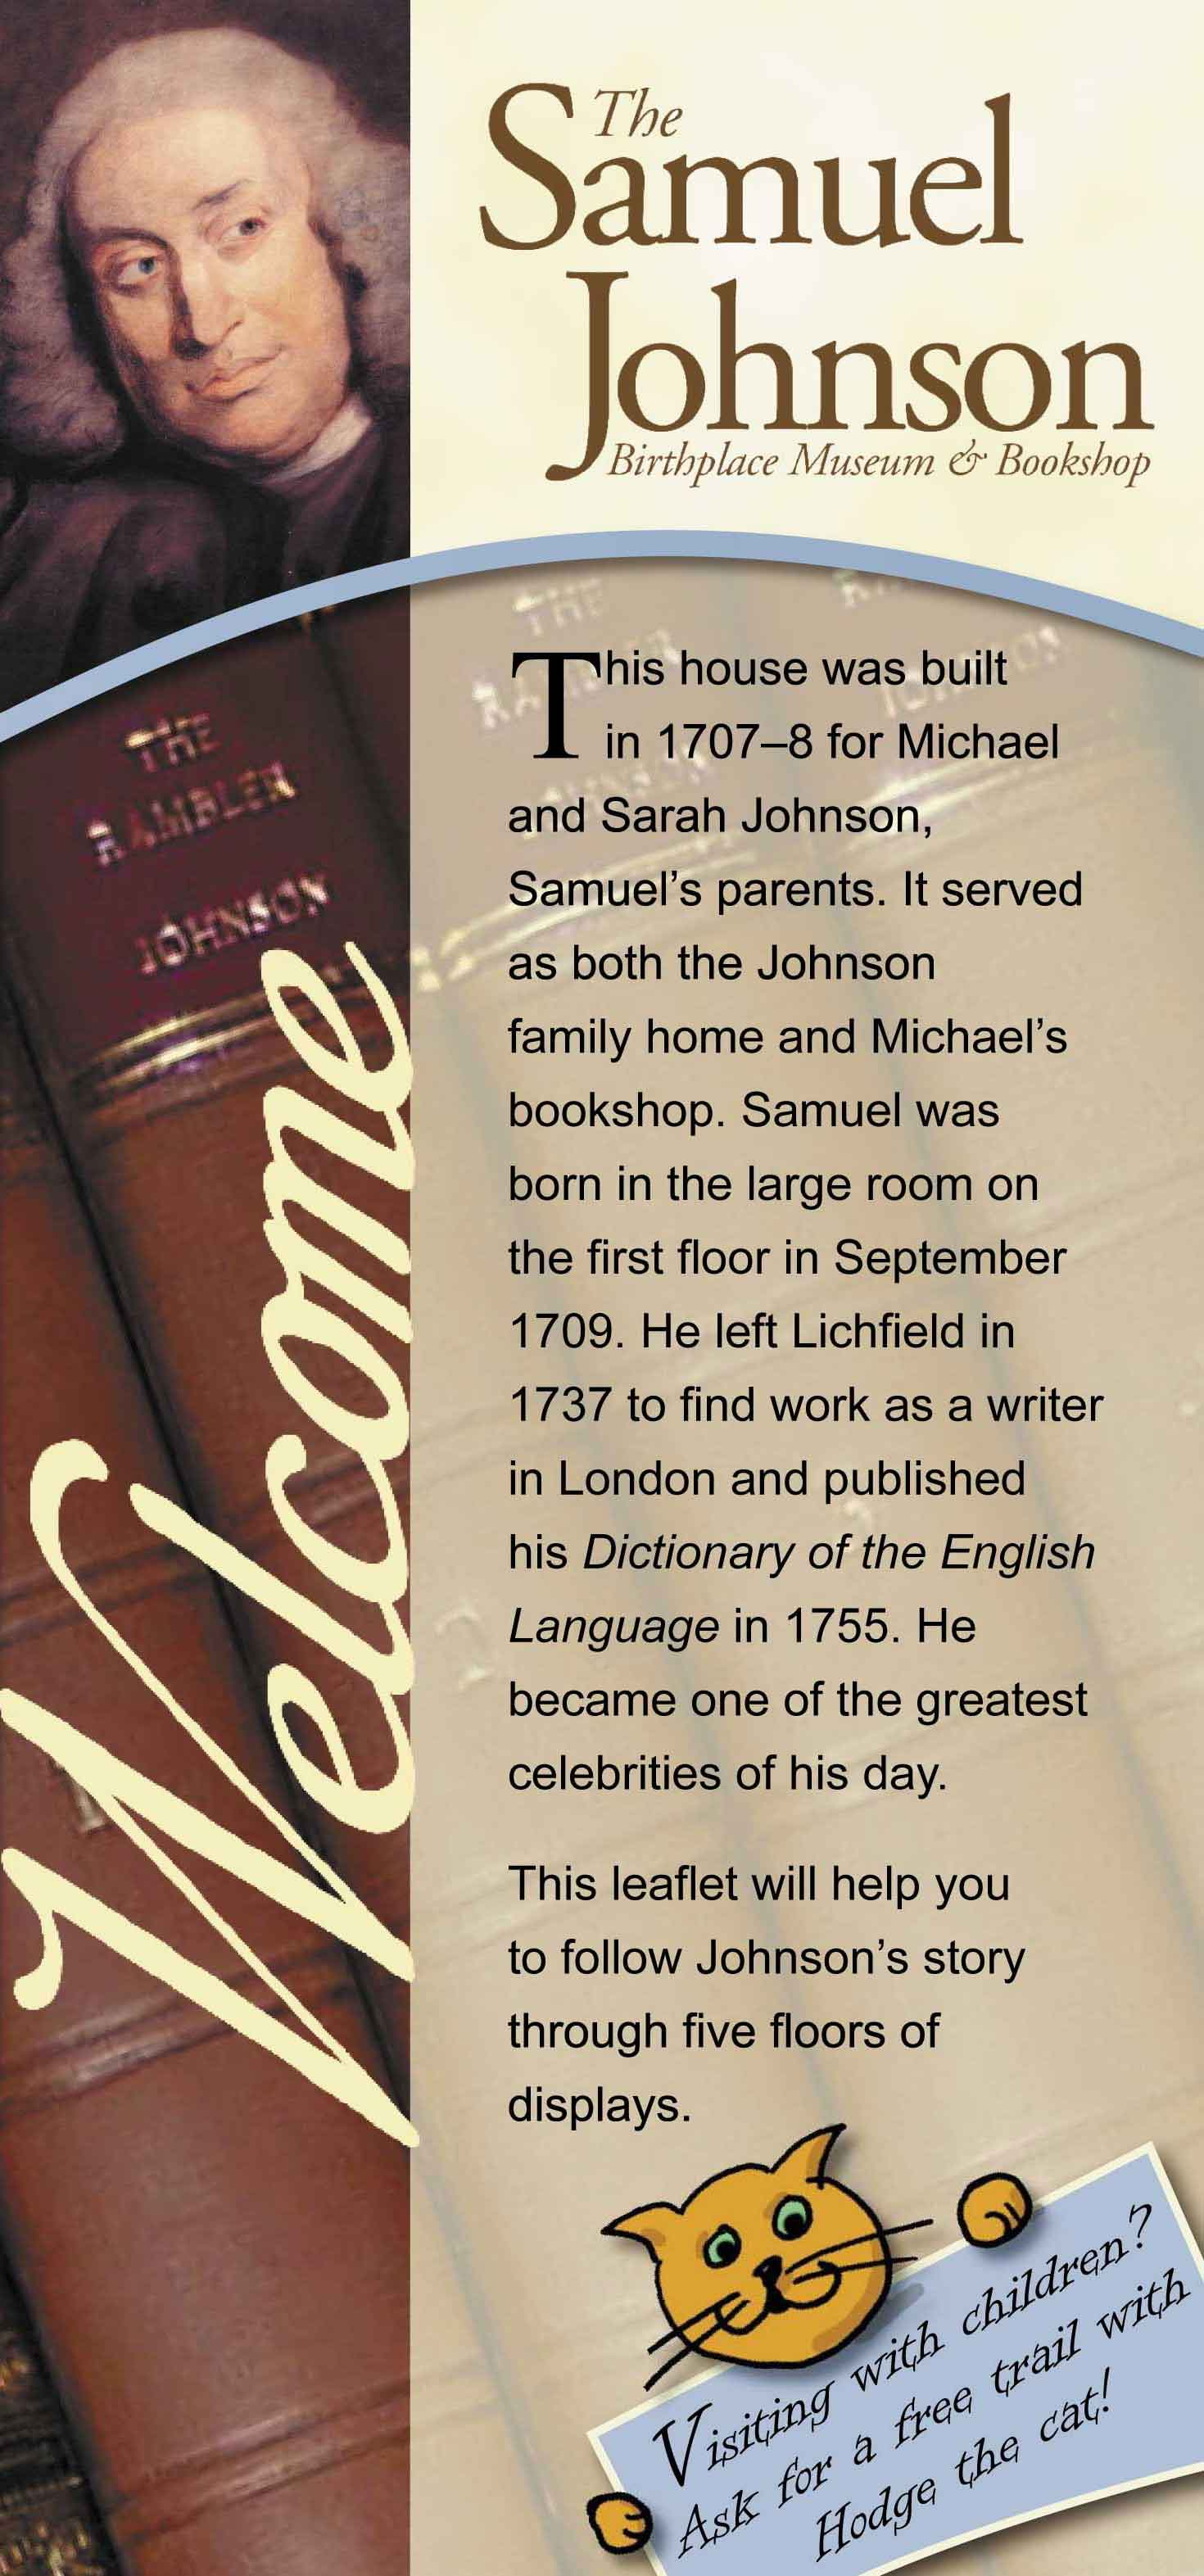 Samuel Johnson leaflet